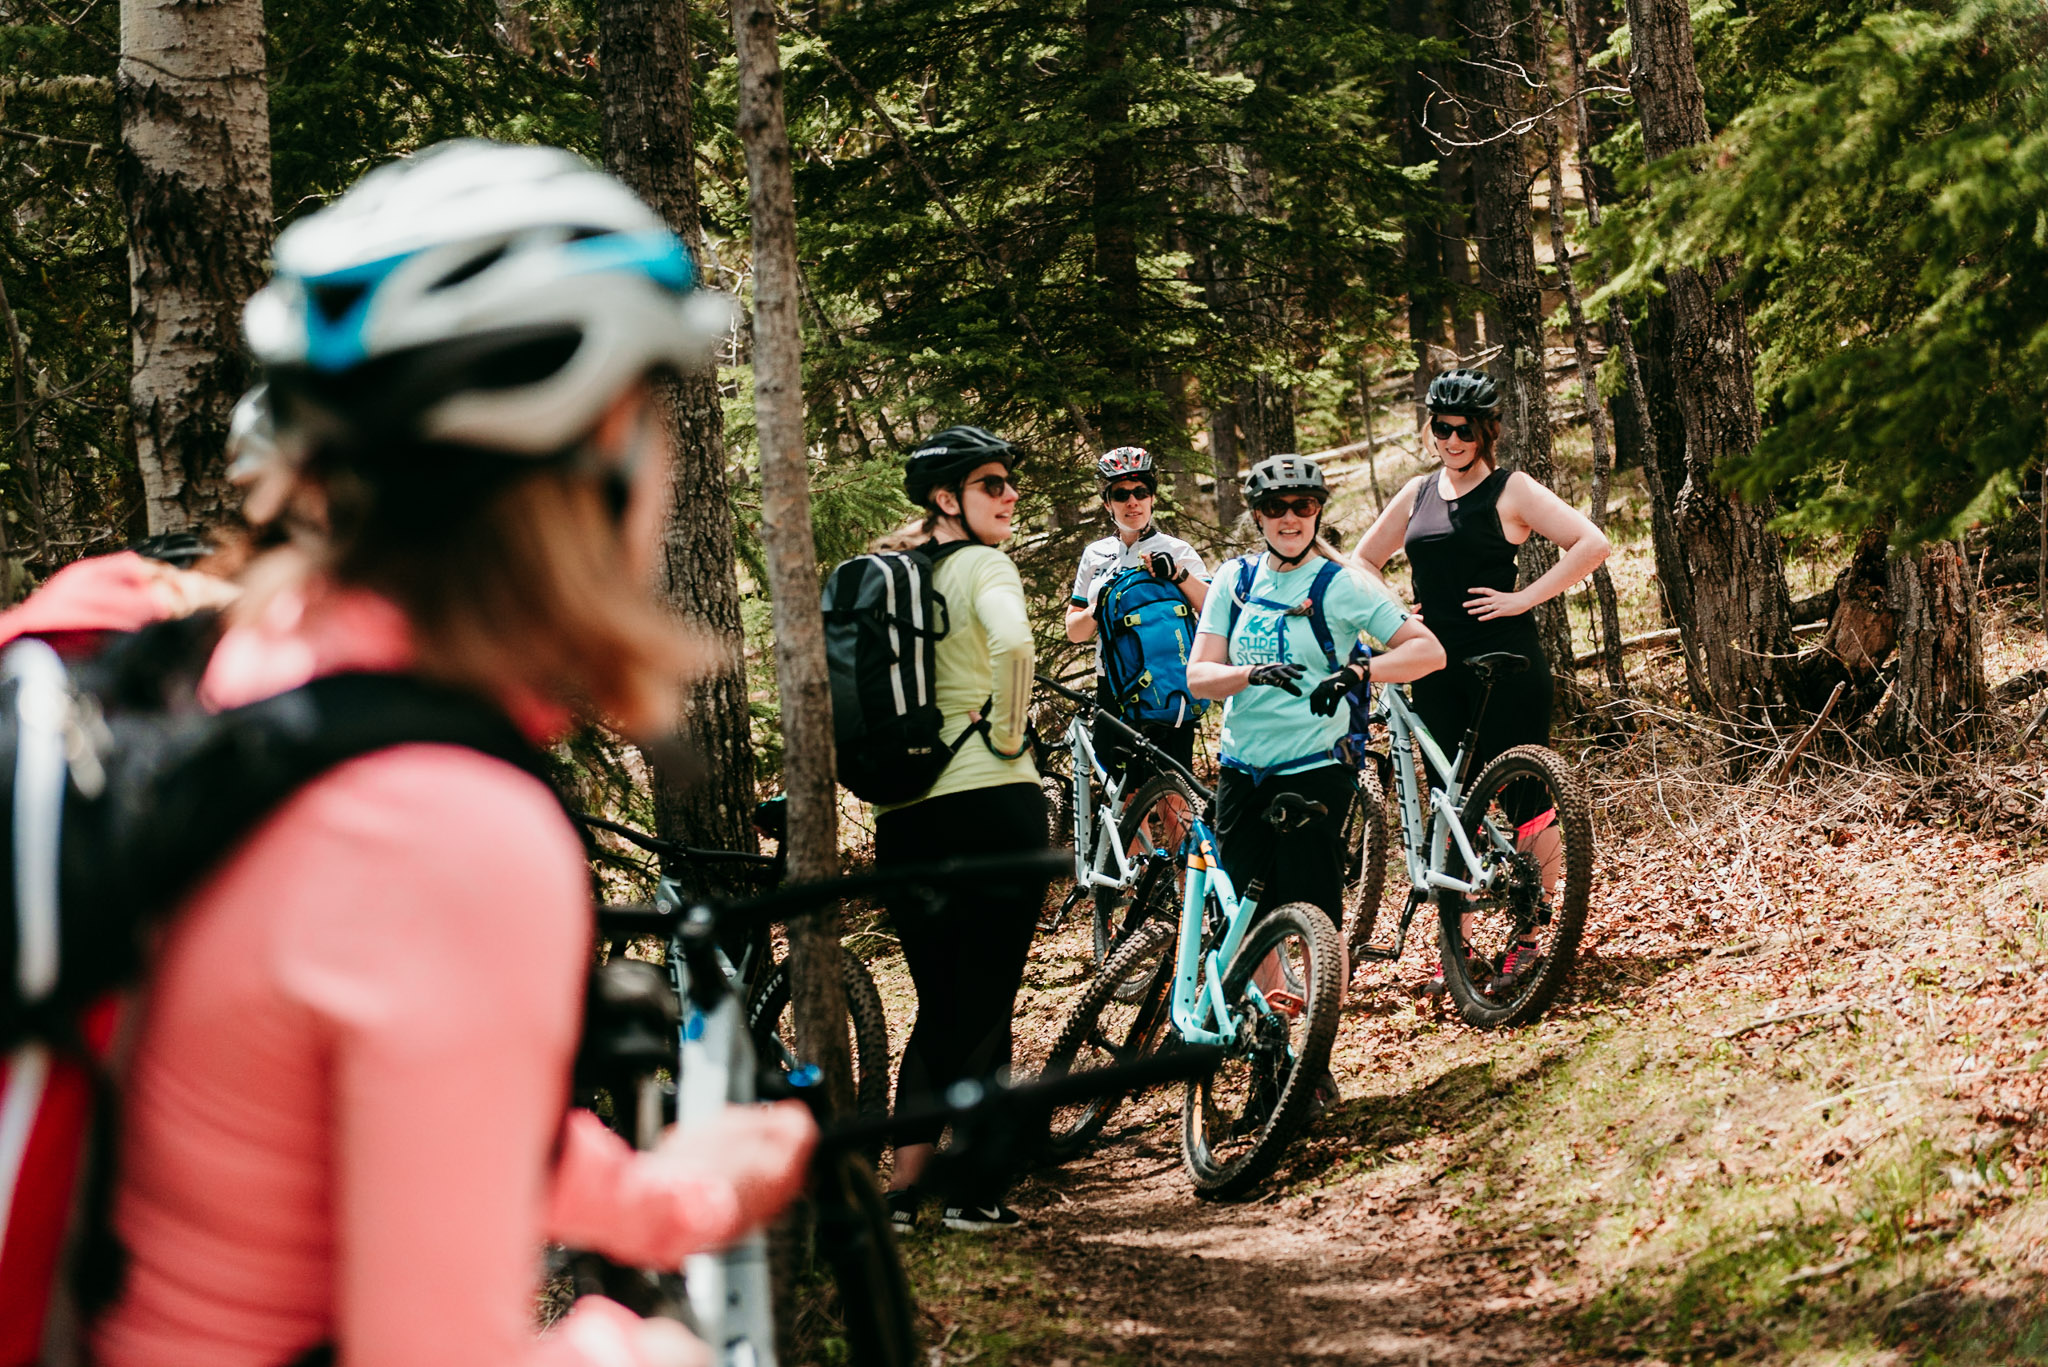 May 27, 2019 - Shred Sisters - Bragg Creek-57.jpg